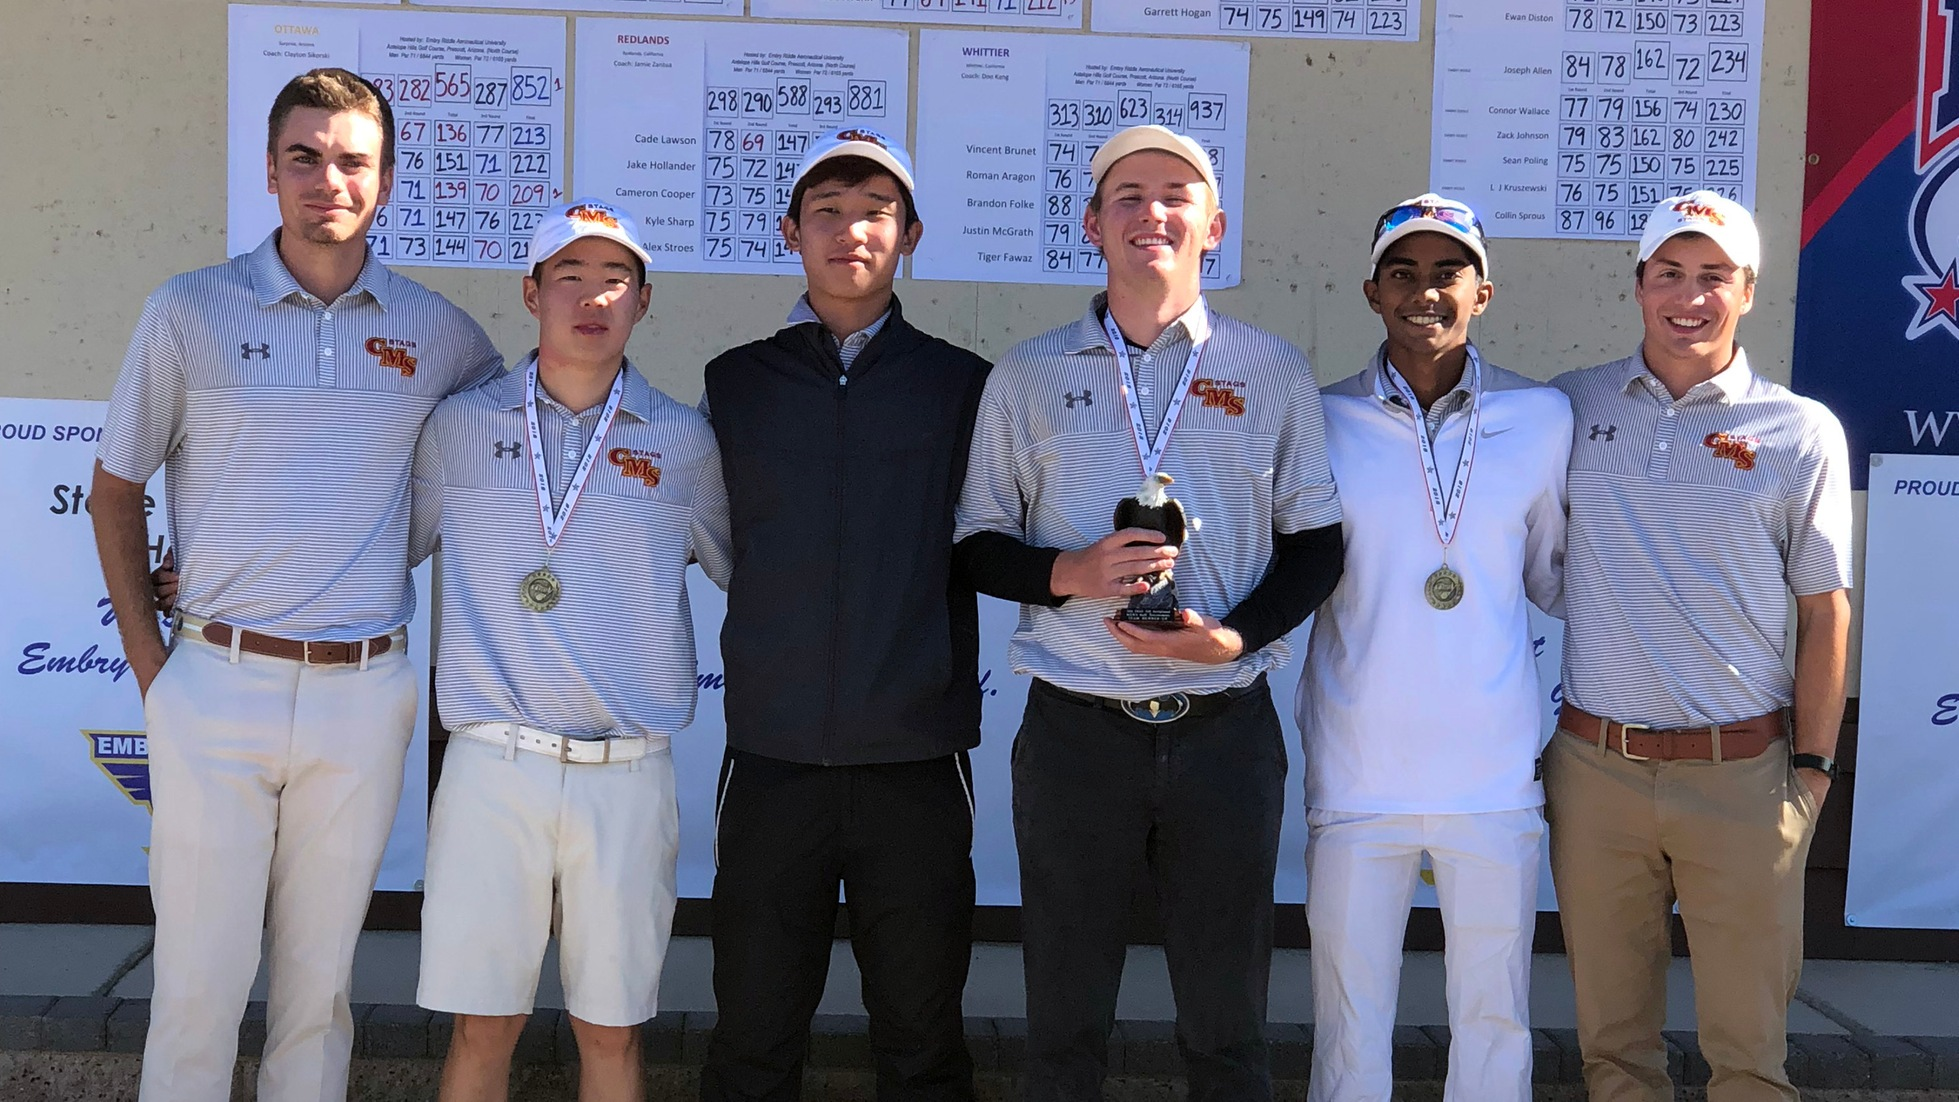 CMS Men's Golf Finishes Second at Embry-Riddle Invite with Three of Top Four Individuals